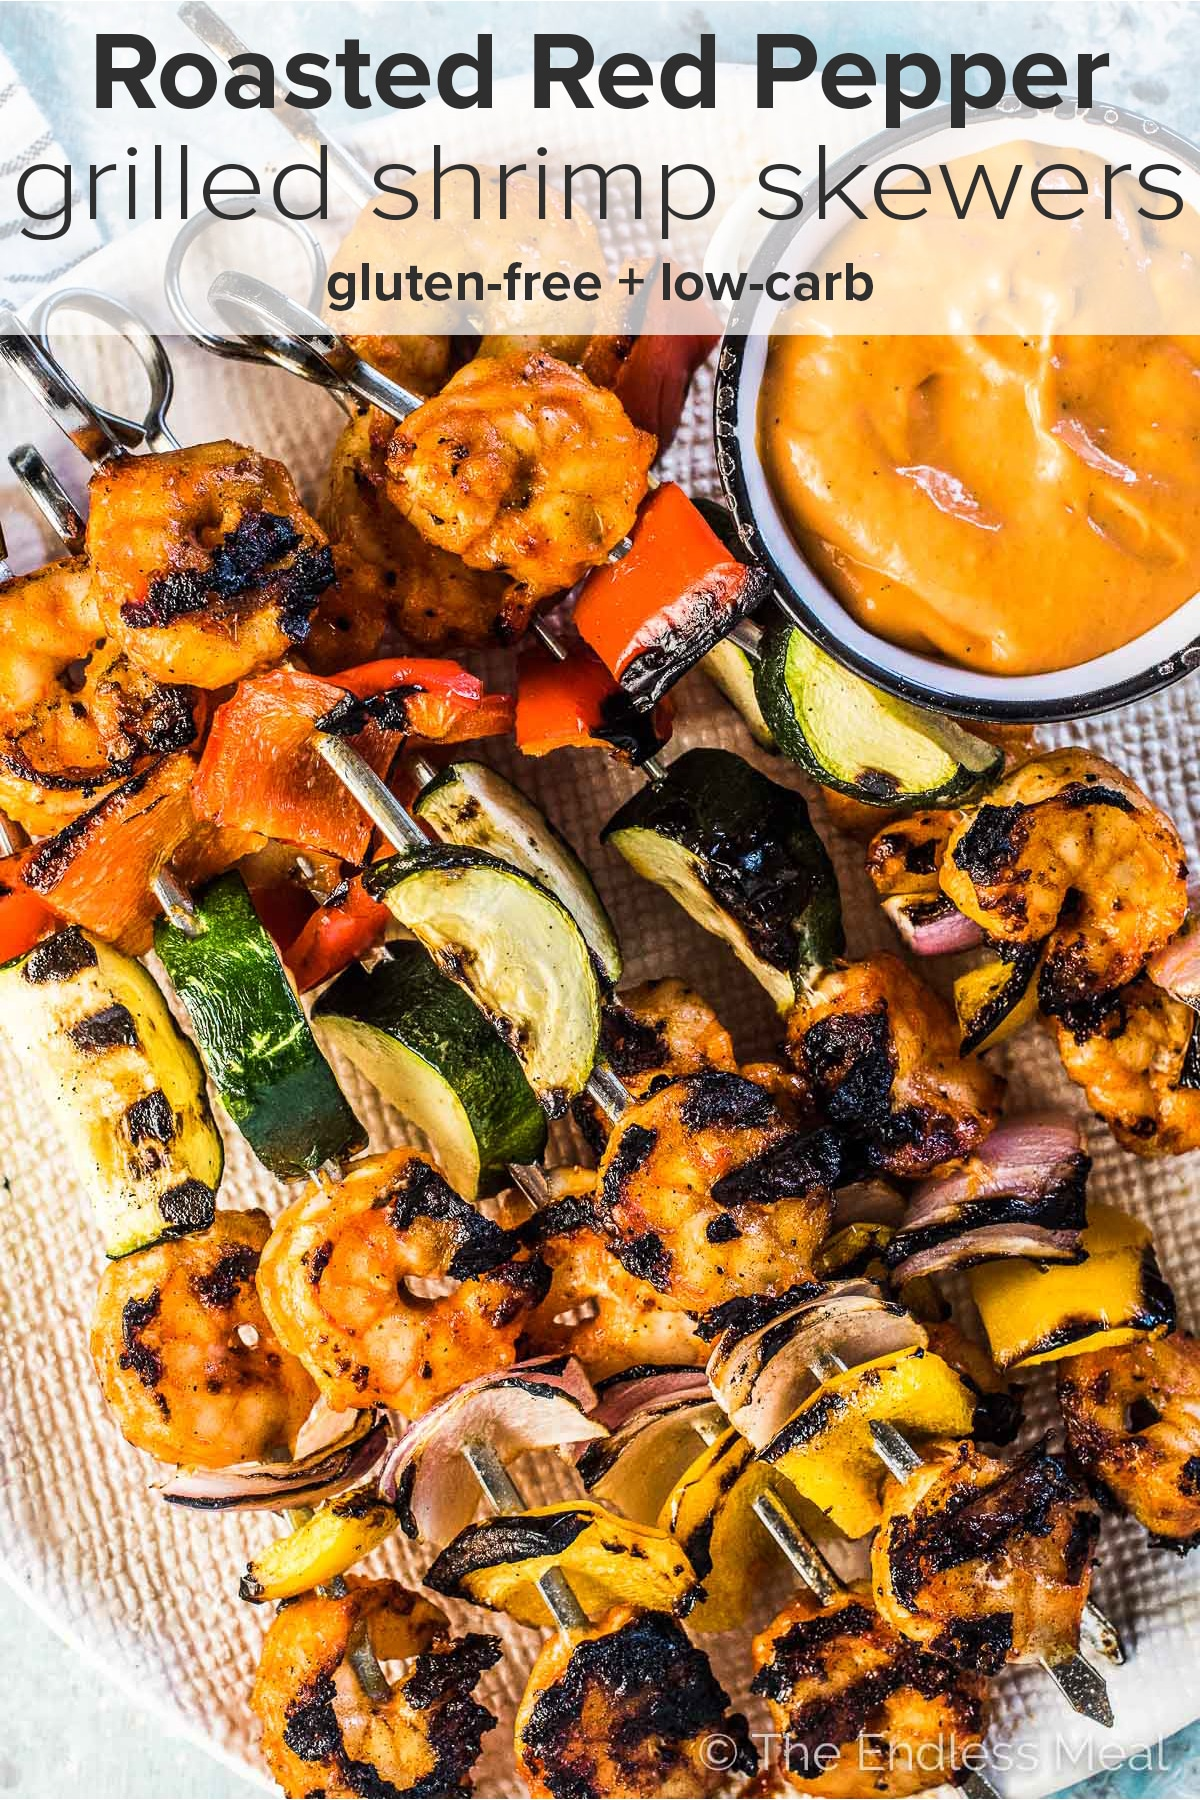 Grilled shrimp skewers piled high on a plate with roasted red pepper dip on the side and the recipe title at the top of the picture.